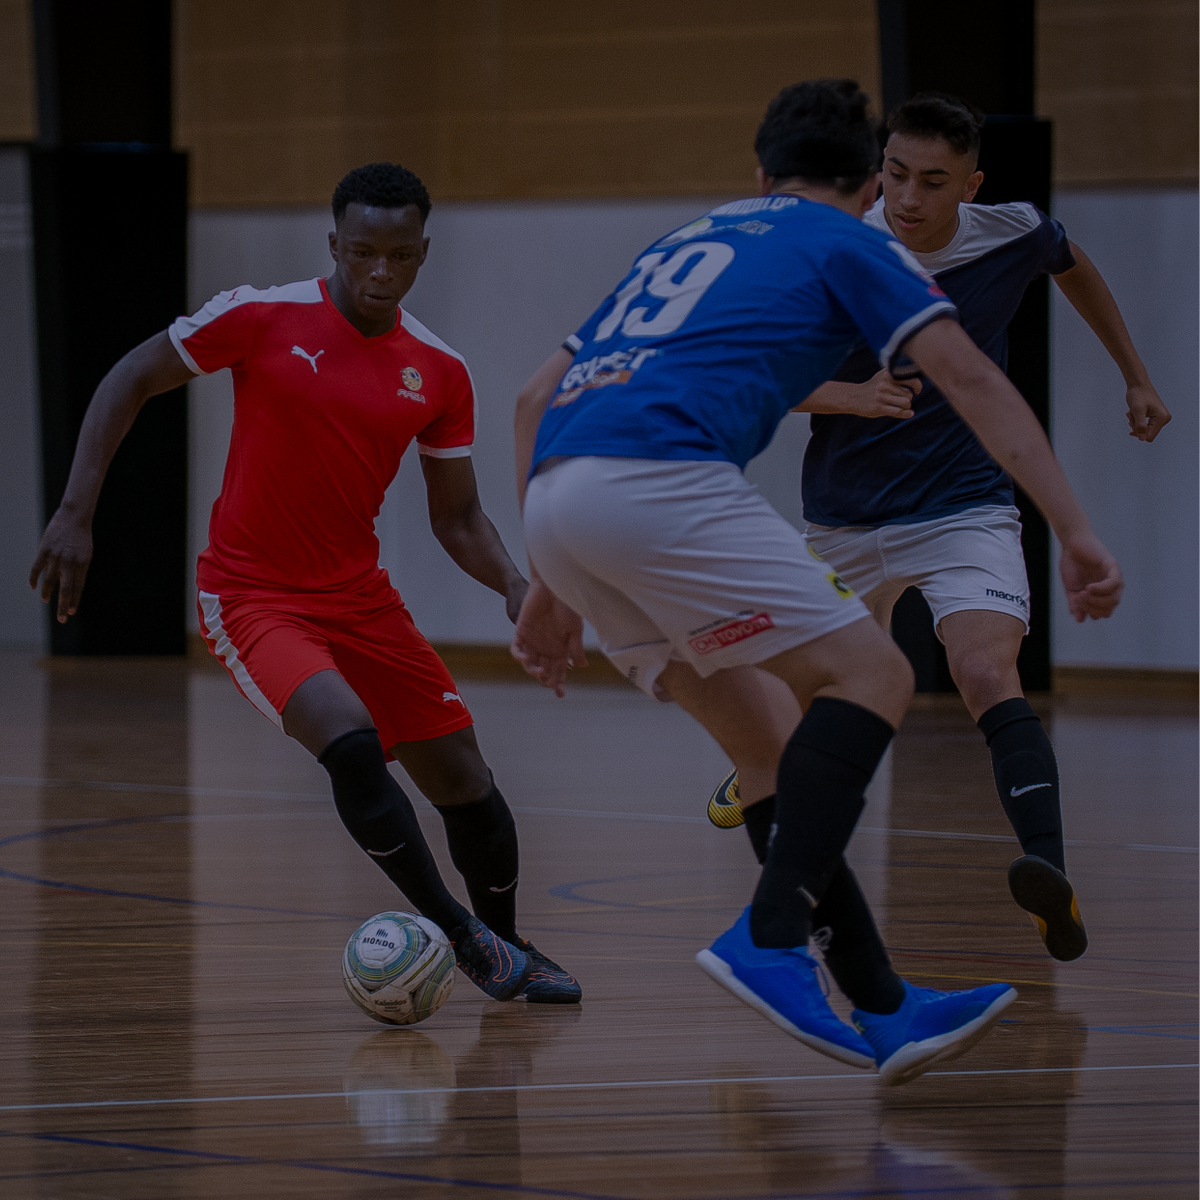 Meet a rising star - Abou Keita - The Charan Foundation is delighted to have supported rising star Abou Keita play in the 2019 National Futsal Championships.